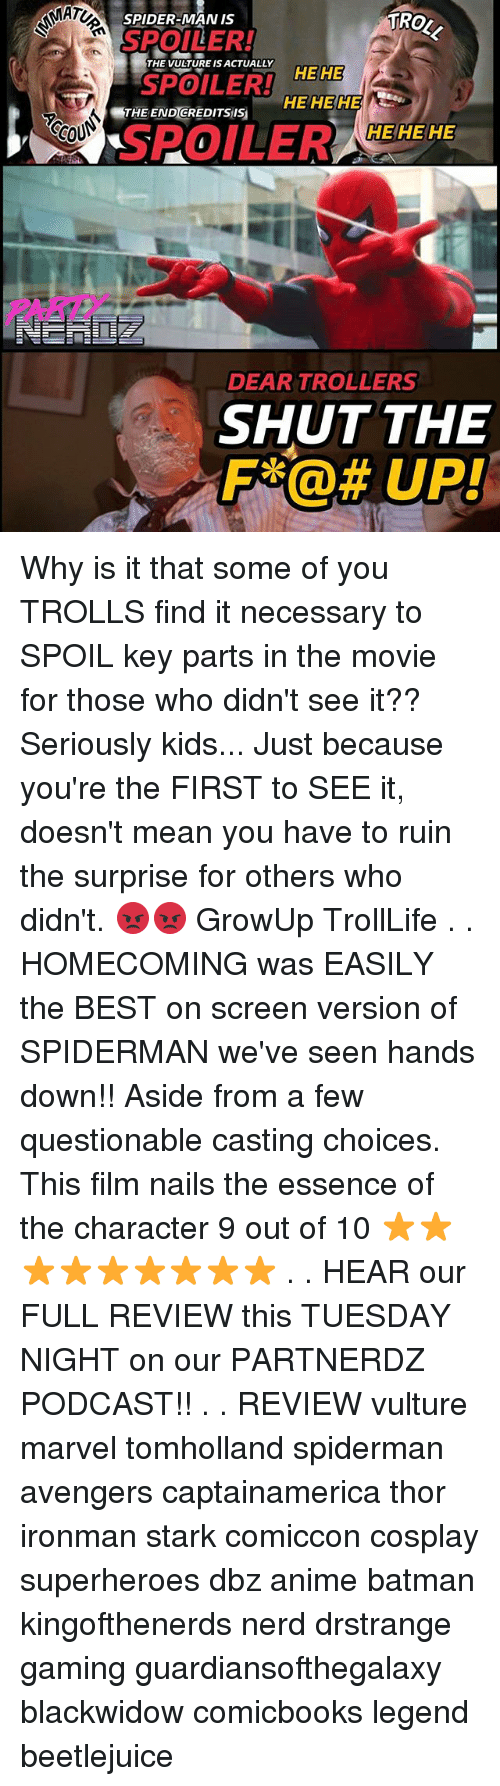 Beetlejuice: MAT  TRO  SPIDER-MAN IS  SPOILER!  THE TURE S CLYEE  SPOILER!  HEHE  HE HE HE  THE END GREDITSis  CCOU  HEHE HE  SPOILER ZEHEHE  0  PARI  DEAR TROLLERS  SHUT THE  F@UP! Why is it that some of you TROLLS find it necessary to SPOIL key parts in the movie for those who didn't see it?? Seriously kids... Just because you're the FIRST to SEE it, doesn't mean you have to ruin the surprise for others who didn't. 😡😡 GrowUp TrollLife . . HOMECOMING was EASILY the BEST on screen version of SPIDERMAN we've seen hands down!! Aside from a few questionable casting choices. This film nails the essence of the character 9 out of 10 ⭐⭐⭐⭐⭐⭐⭐⭐⭐ . . HEAR our FULL REVIEW this TUESDAY NIGHT on our PARTNERDZ PODCAST!! . . REVIEW vulture marvel tomholland spiderman avengers captainamerica thor ironman stark comiccon cosplay superheroes dbz anime batman kingofthenerds nerd drstrange gaming guardiansofthegalaxy blackwidow comicbooks legend beetlejuice